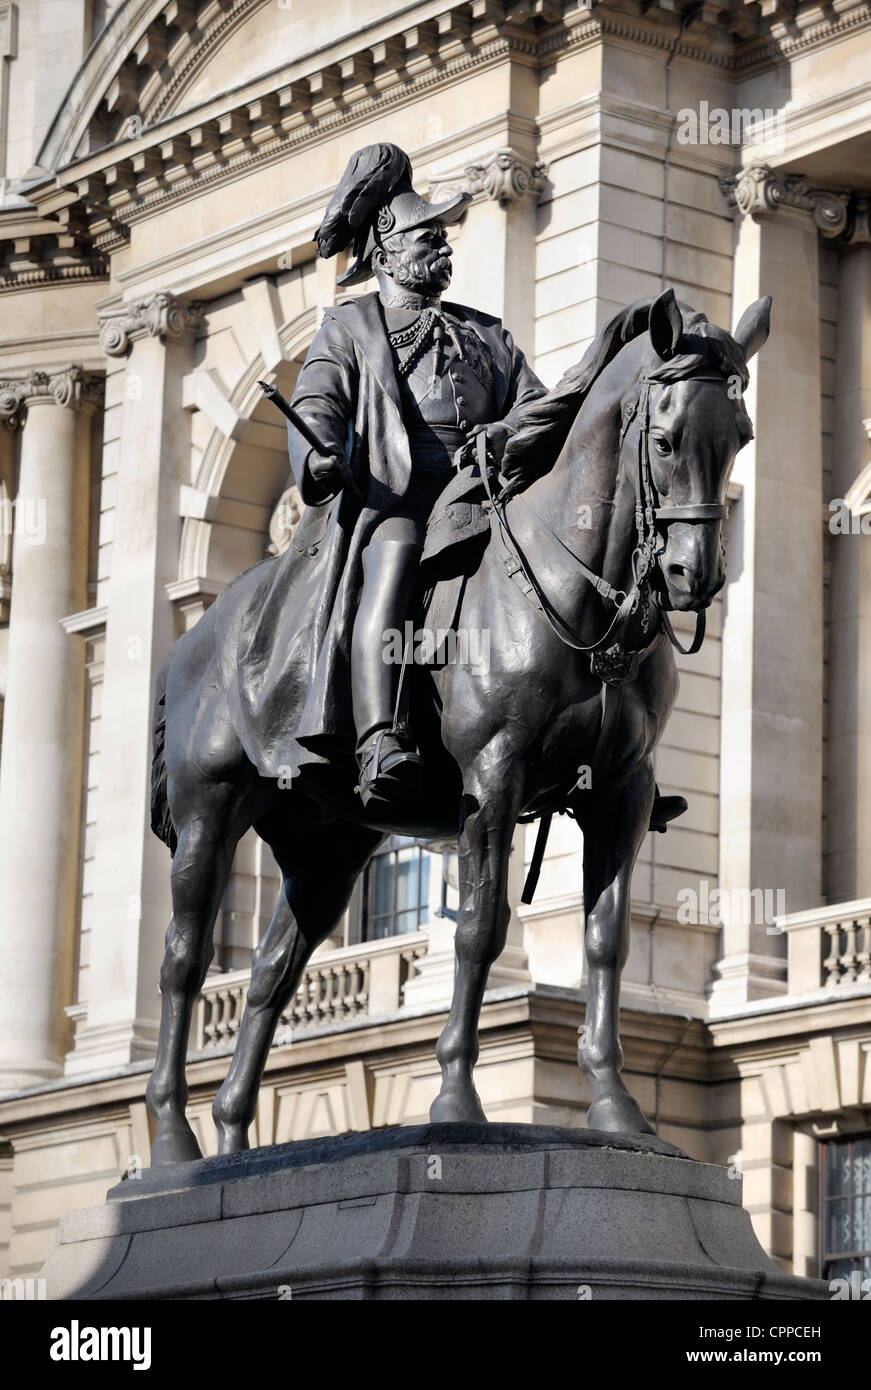 Statue of Prince George, Duke of Cambridge in front of the Ministry of Defence Building, Whitehall, central London, - Stock Image